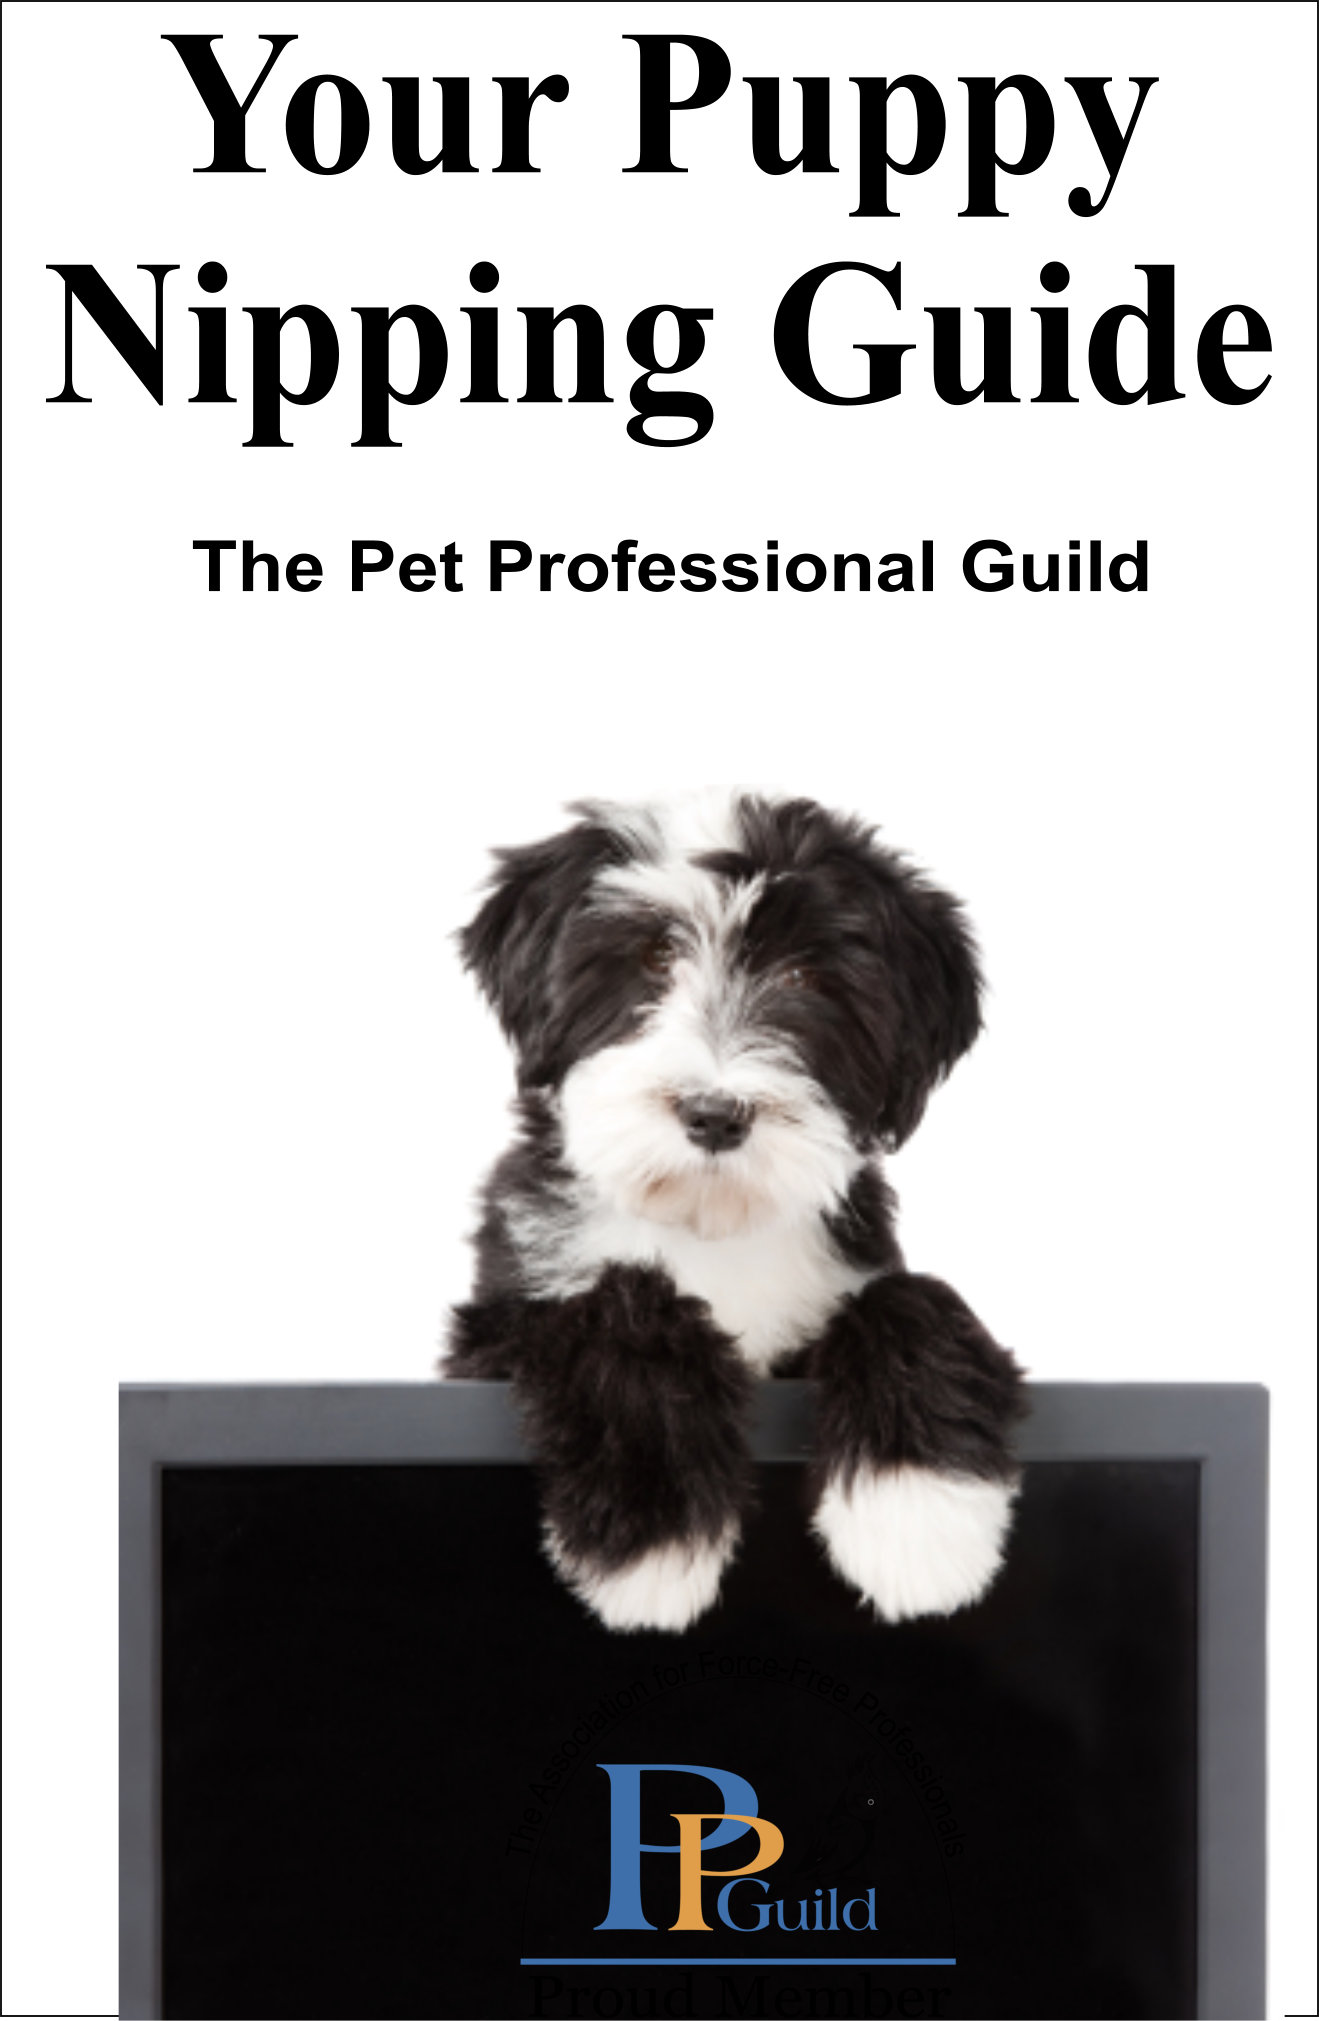 The Pet Professional Guild - Puppy Education